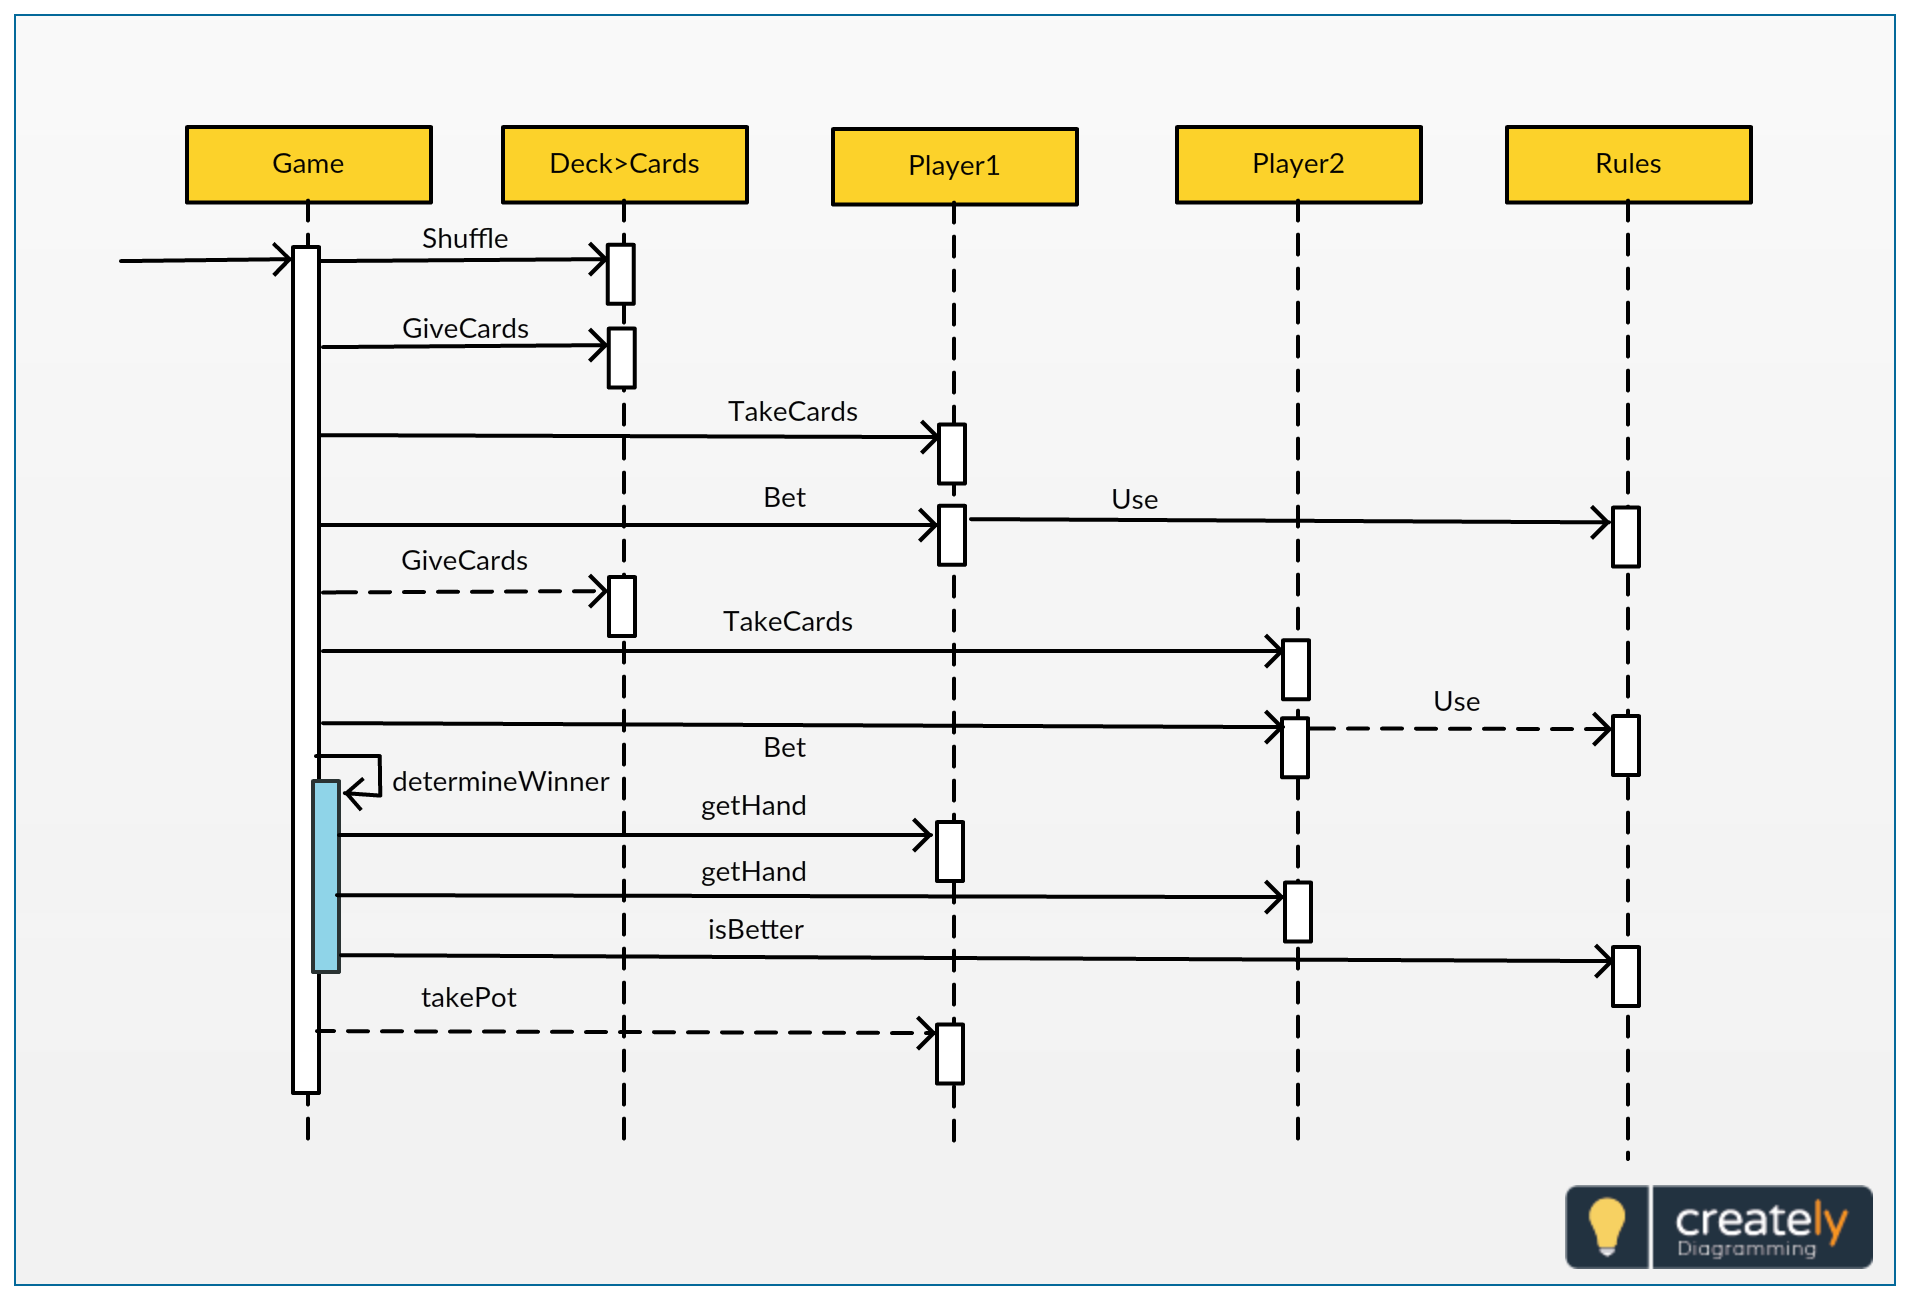 medium resolution of sequence diagram template for card game this diagram shows the interactions arranged in time sequence it depicts the objects and classes involved in the